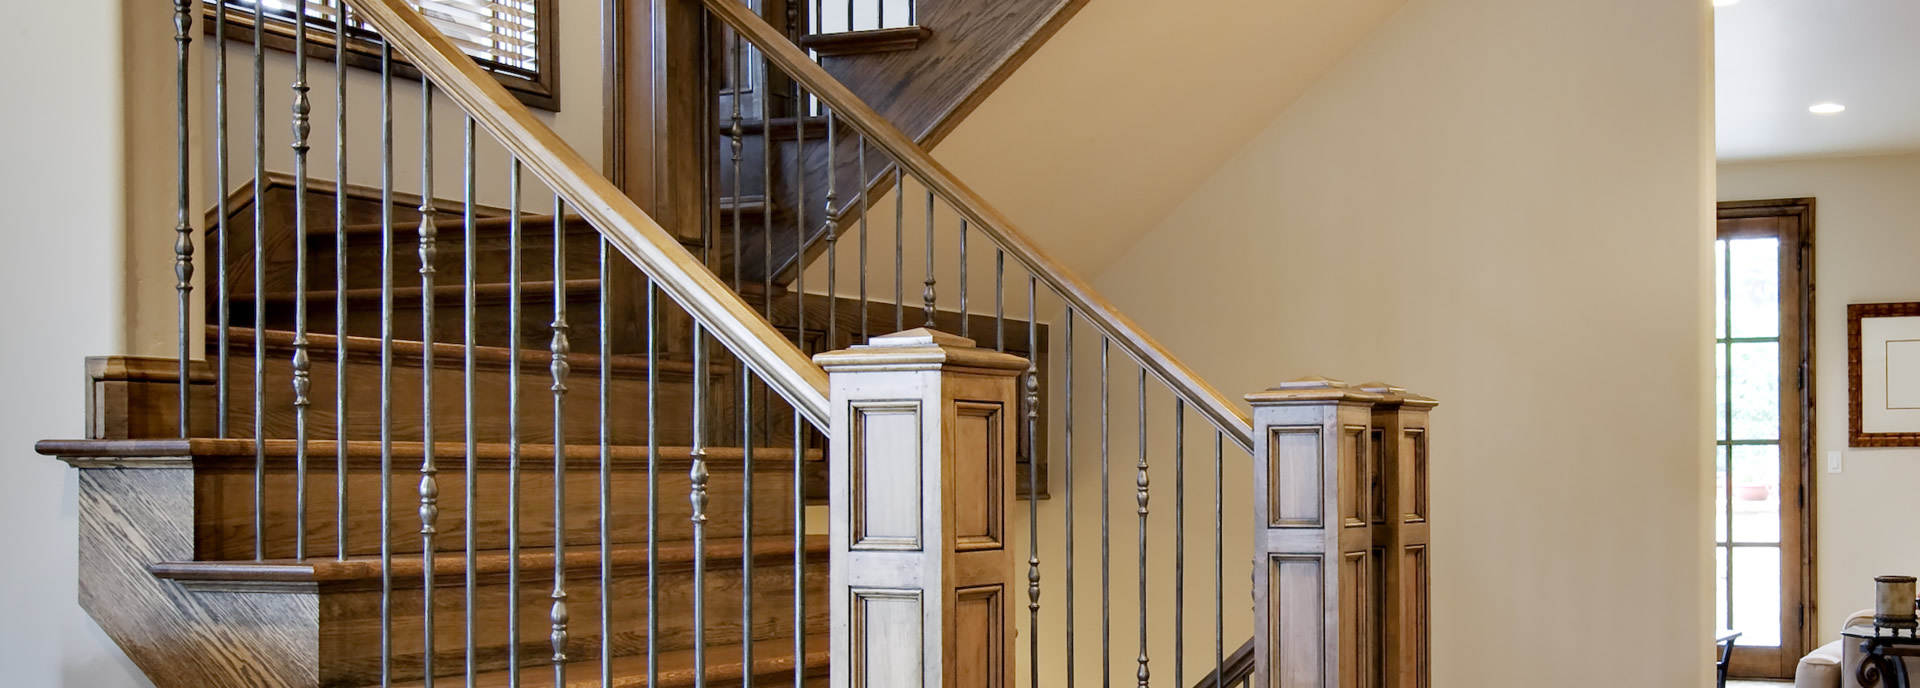 Turnkey Curved Stairs Installation: From Coast to Coast Alpharetta, GA